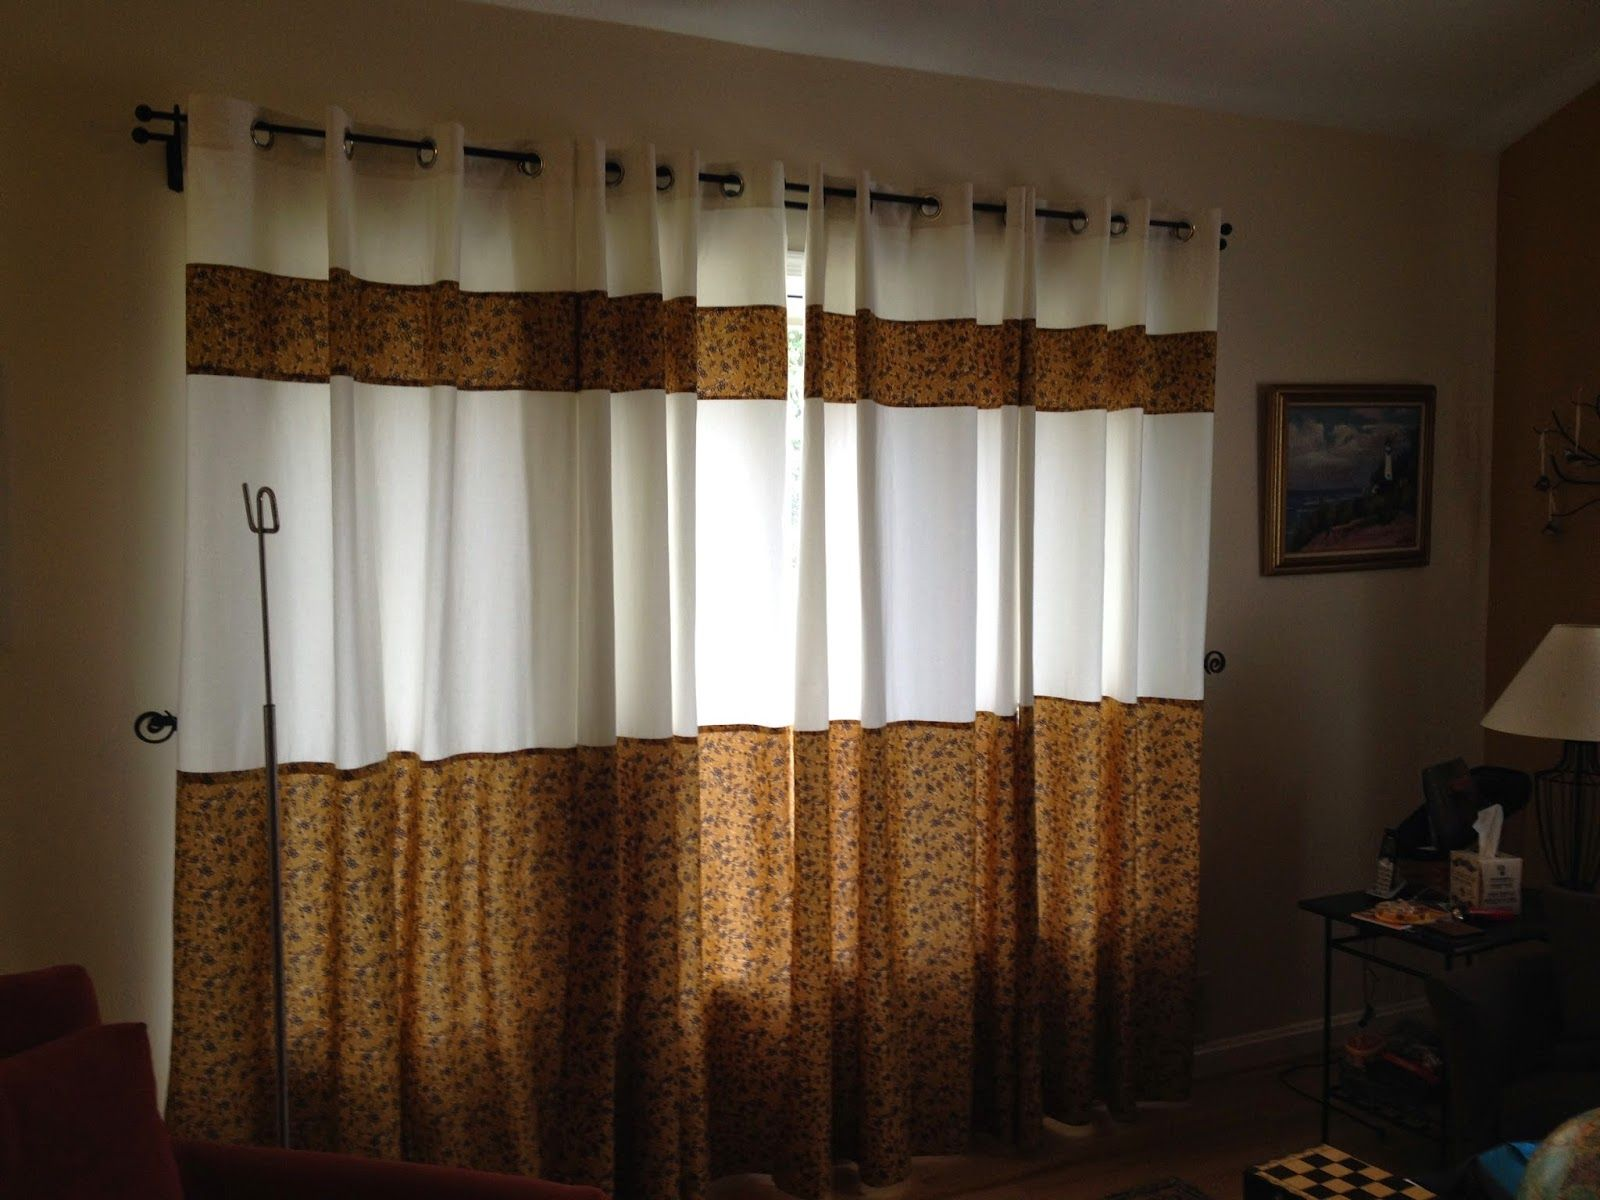 Raum Verdunkelung Vorhänge Blackout Billig Eclipse Gardinen Verdunkelung Gardinen Kendall Gefütterter Vorhang Prin Color Block Curtains Curtains Fancy Curtains - Vorhang Zum Verdunkeln